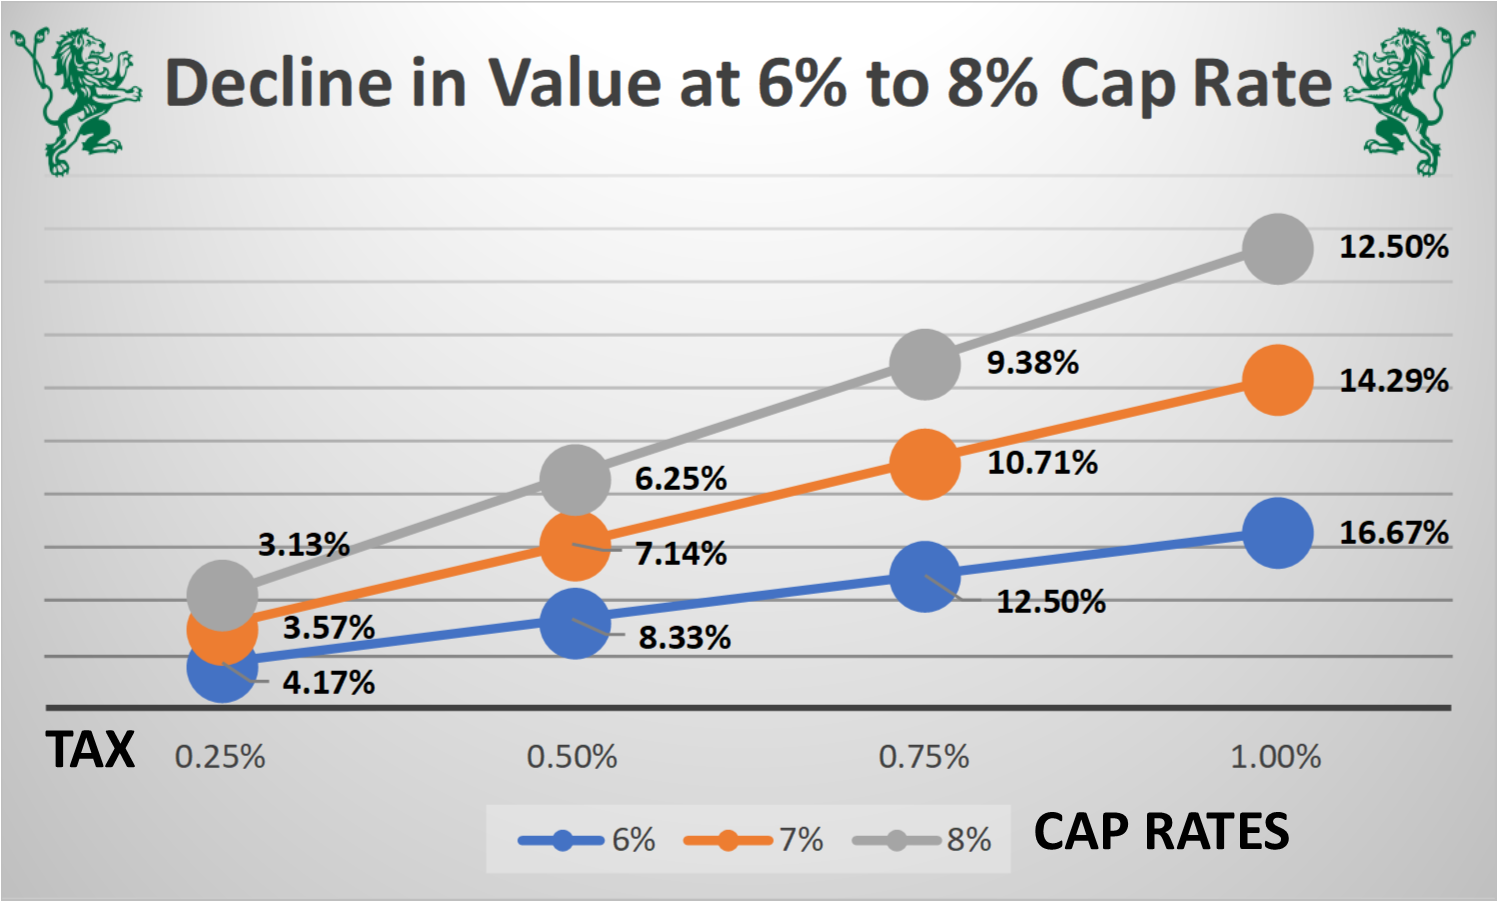 taxes and cap rates2.png